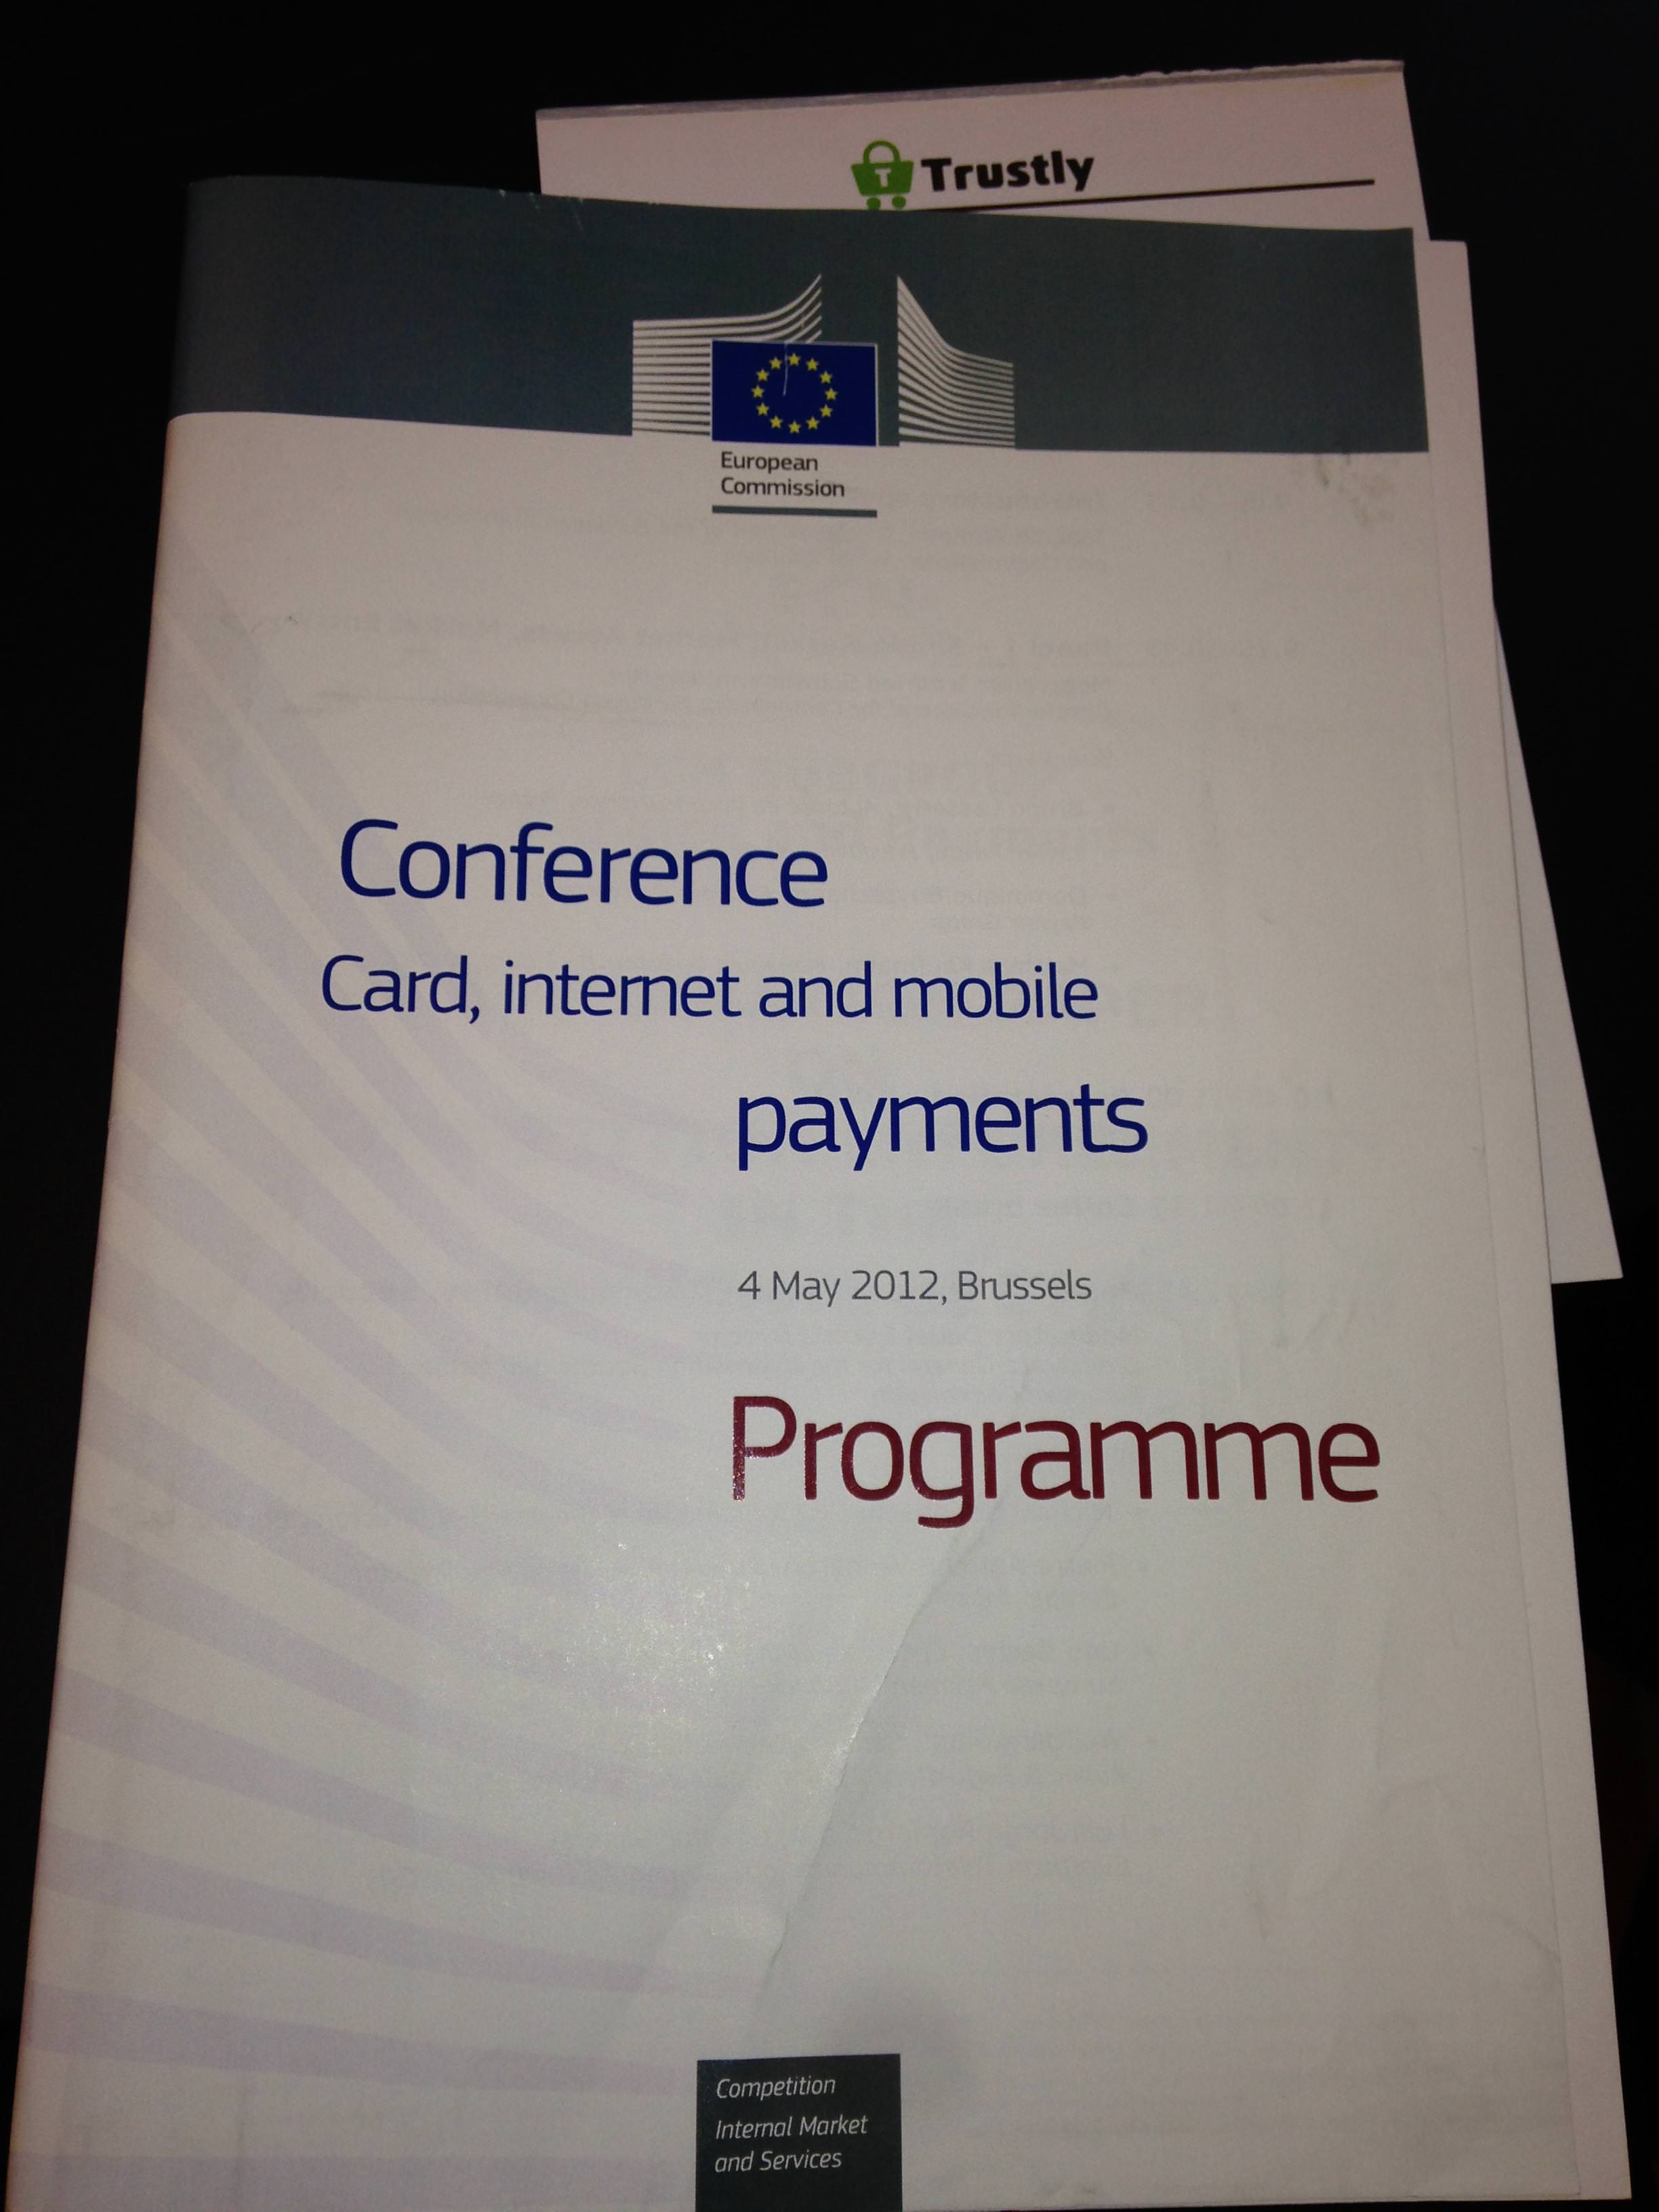 Trustly attends EU-hosted payments conference